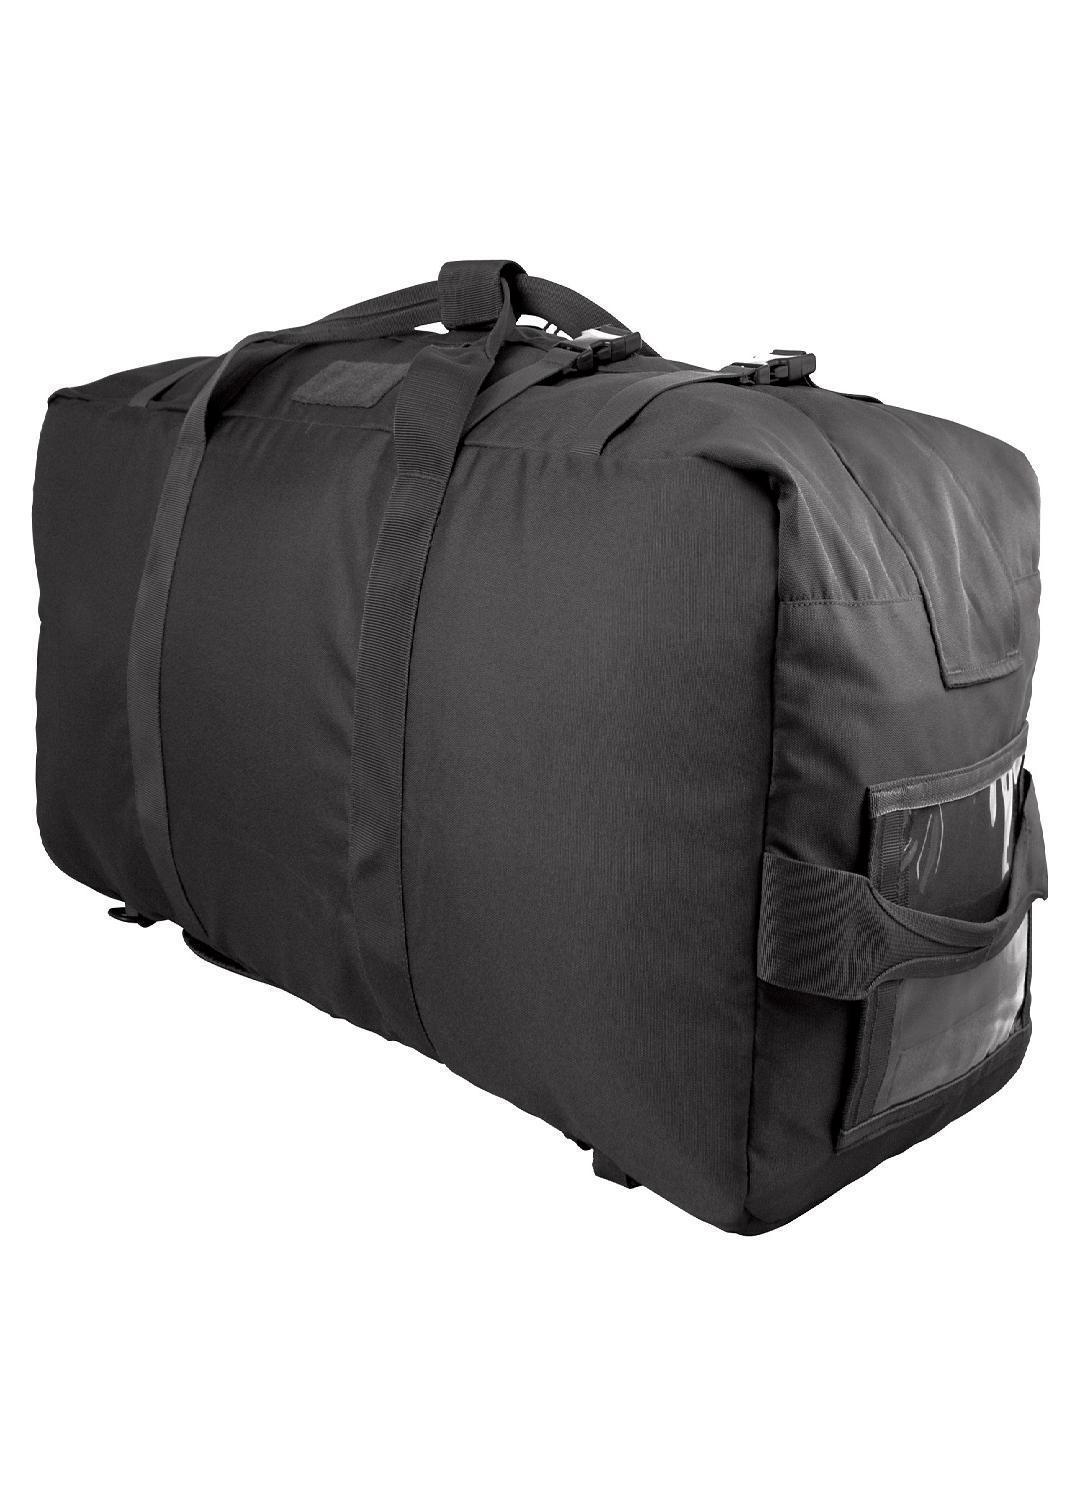 Red Rock Explorer Duffle Pack - Black